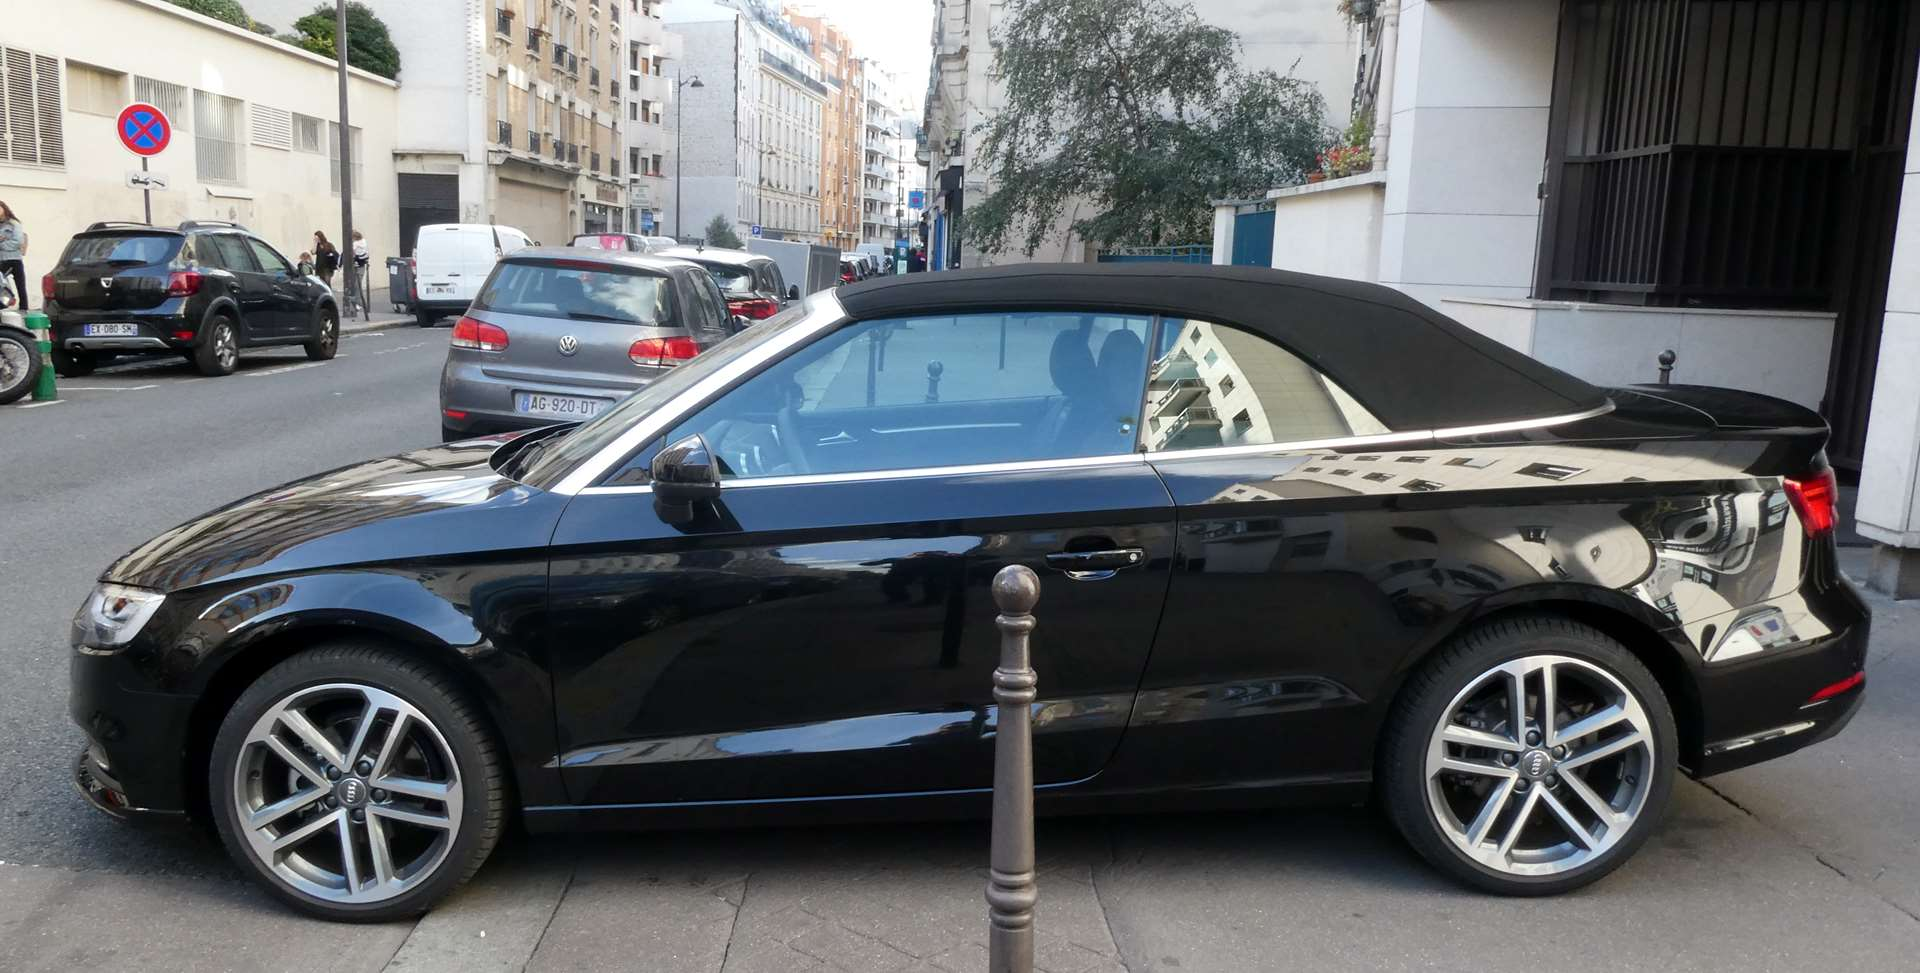 Audi A3 (2) cabriolet 35 TFSI 150 Design luxe S tronic 7 5